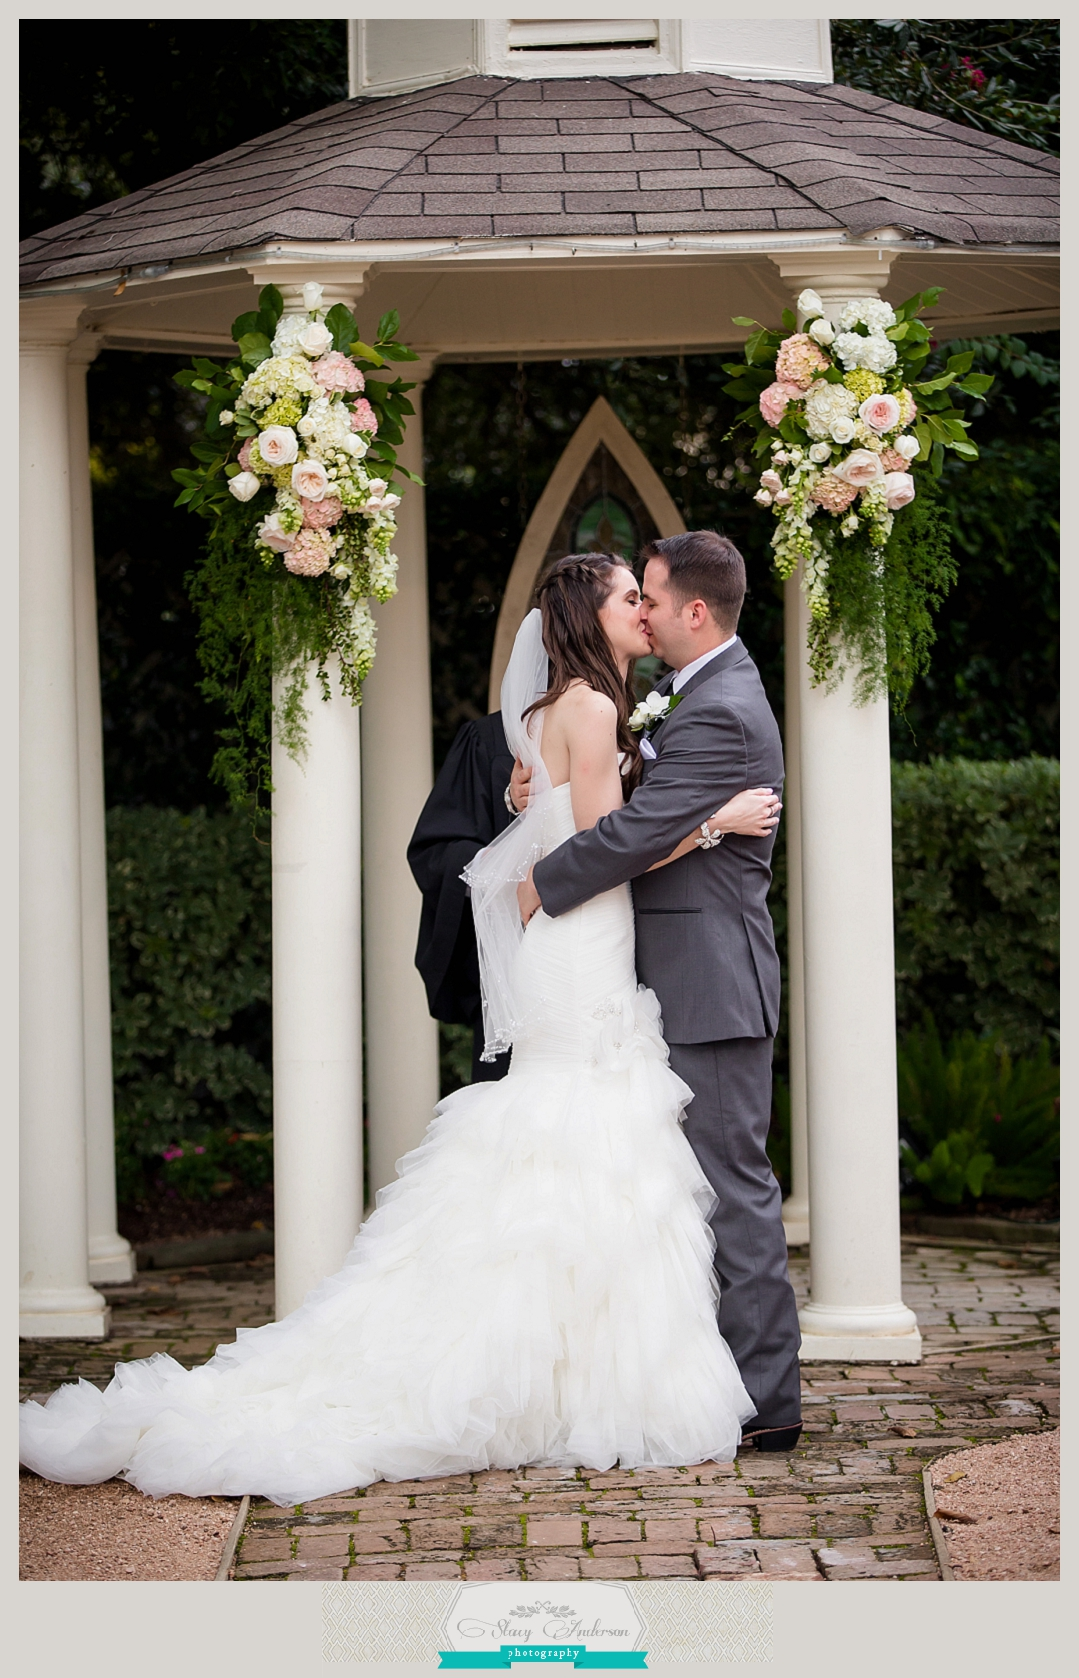 Butler's Courtyard Wedding Photographer (95)